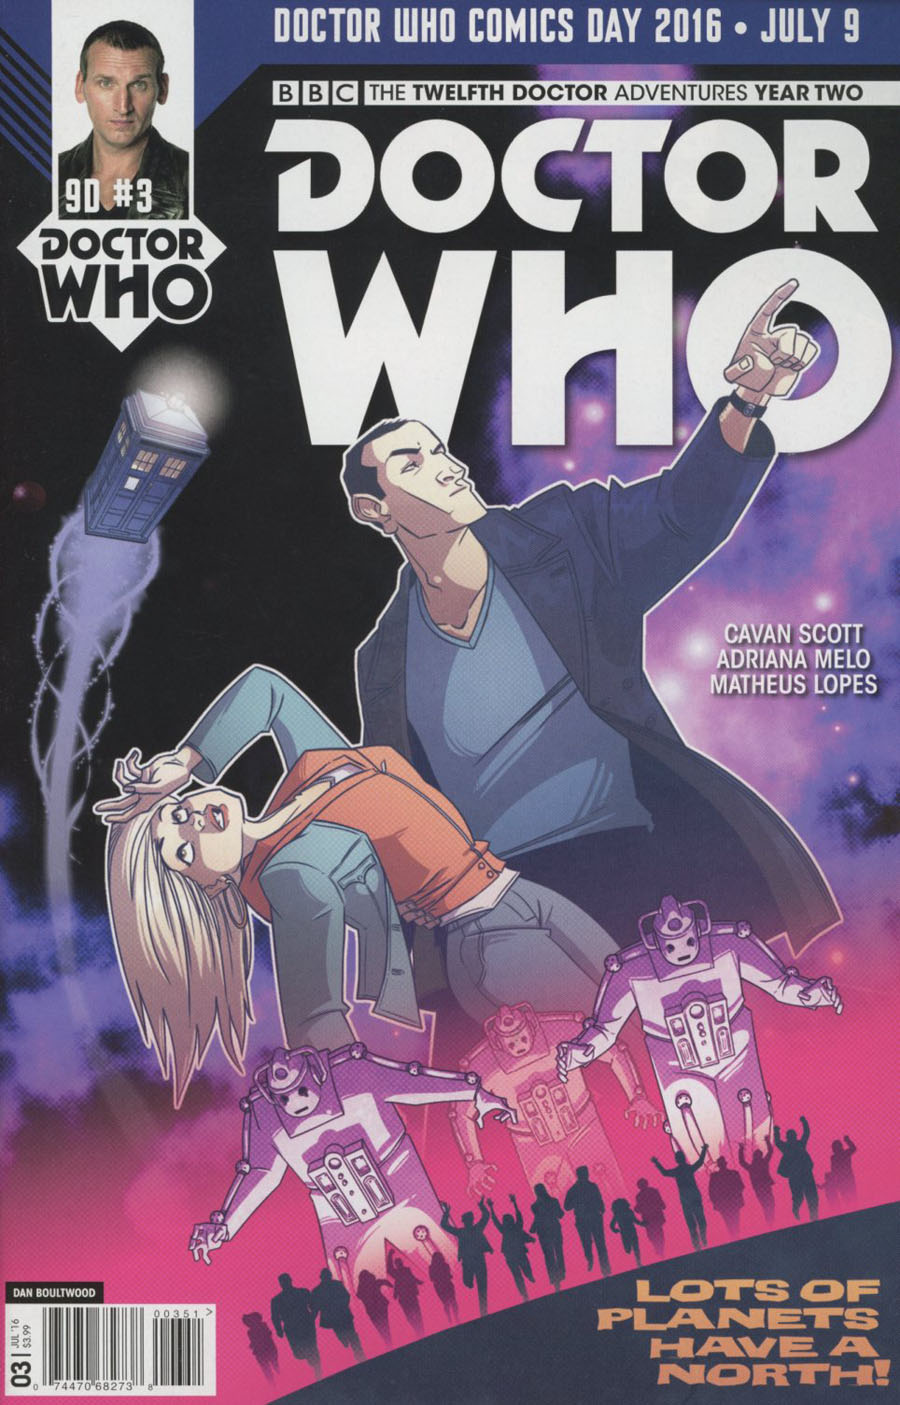 Doctor Who 9th Doctor Vol 2 #3 Cover E Variant Dan Boultwood Doctor Who Comics Day 2016 Cover